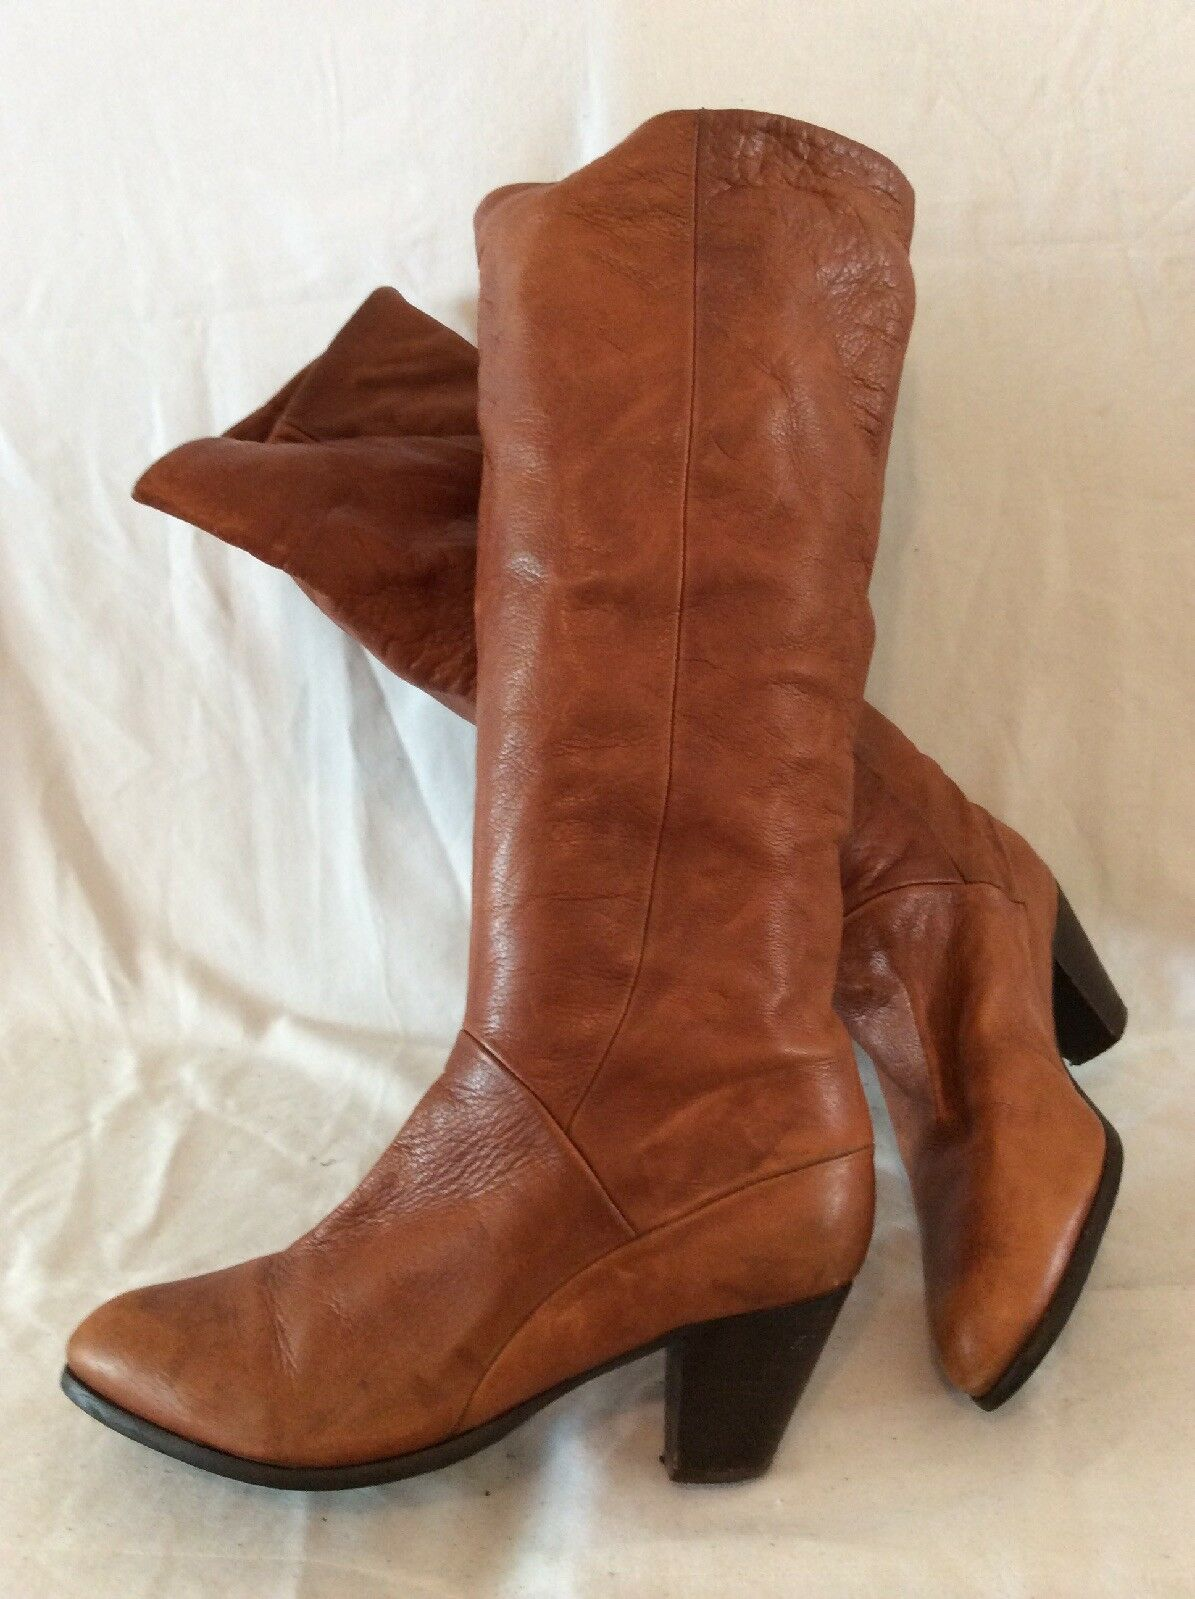 Office Brown Knee High Leather Boots Size 41